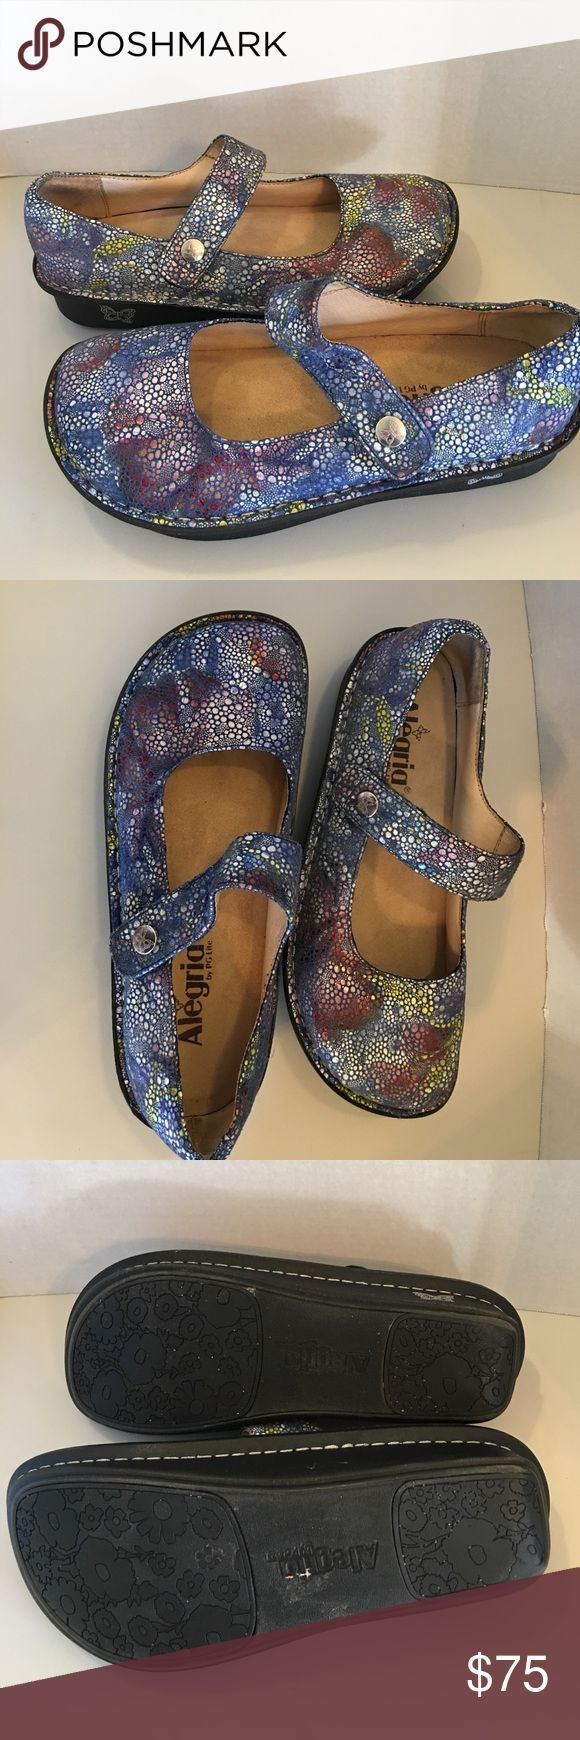 WOMEN'S ALEGRIA PALOMA BLUE BUBBLES WOMEN'S ALEGRIA PALOMA BLUE BUBBLES Excellent condition like new couple times wearing Accommodates custom orthotics Approx. 1'' platform height Approx. 1¾'' heel height Leather lining Alegria Shoes Mules & Clogs